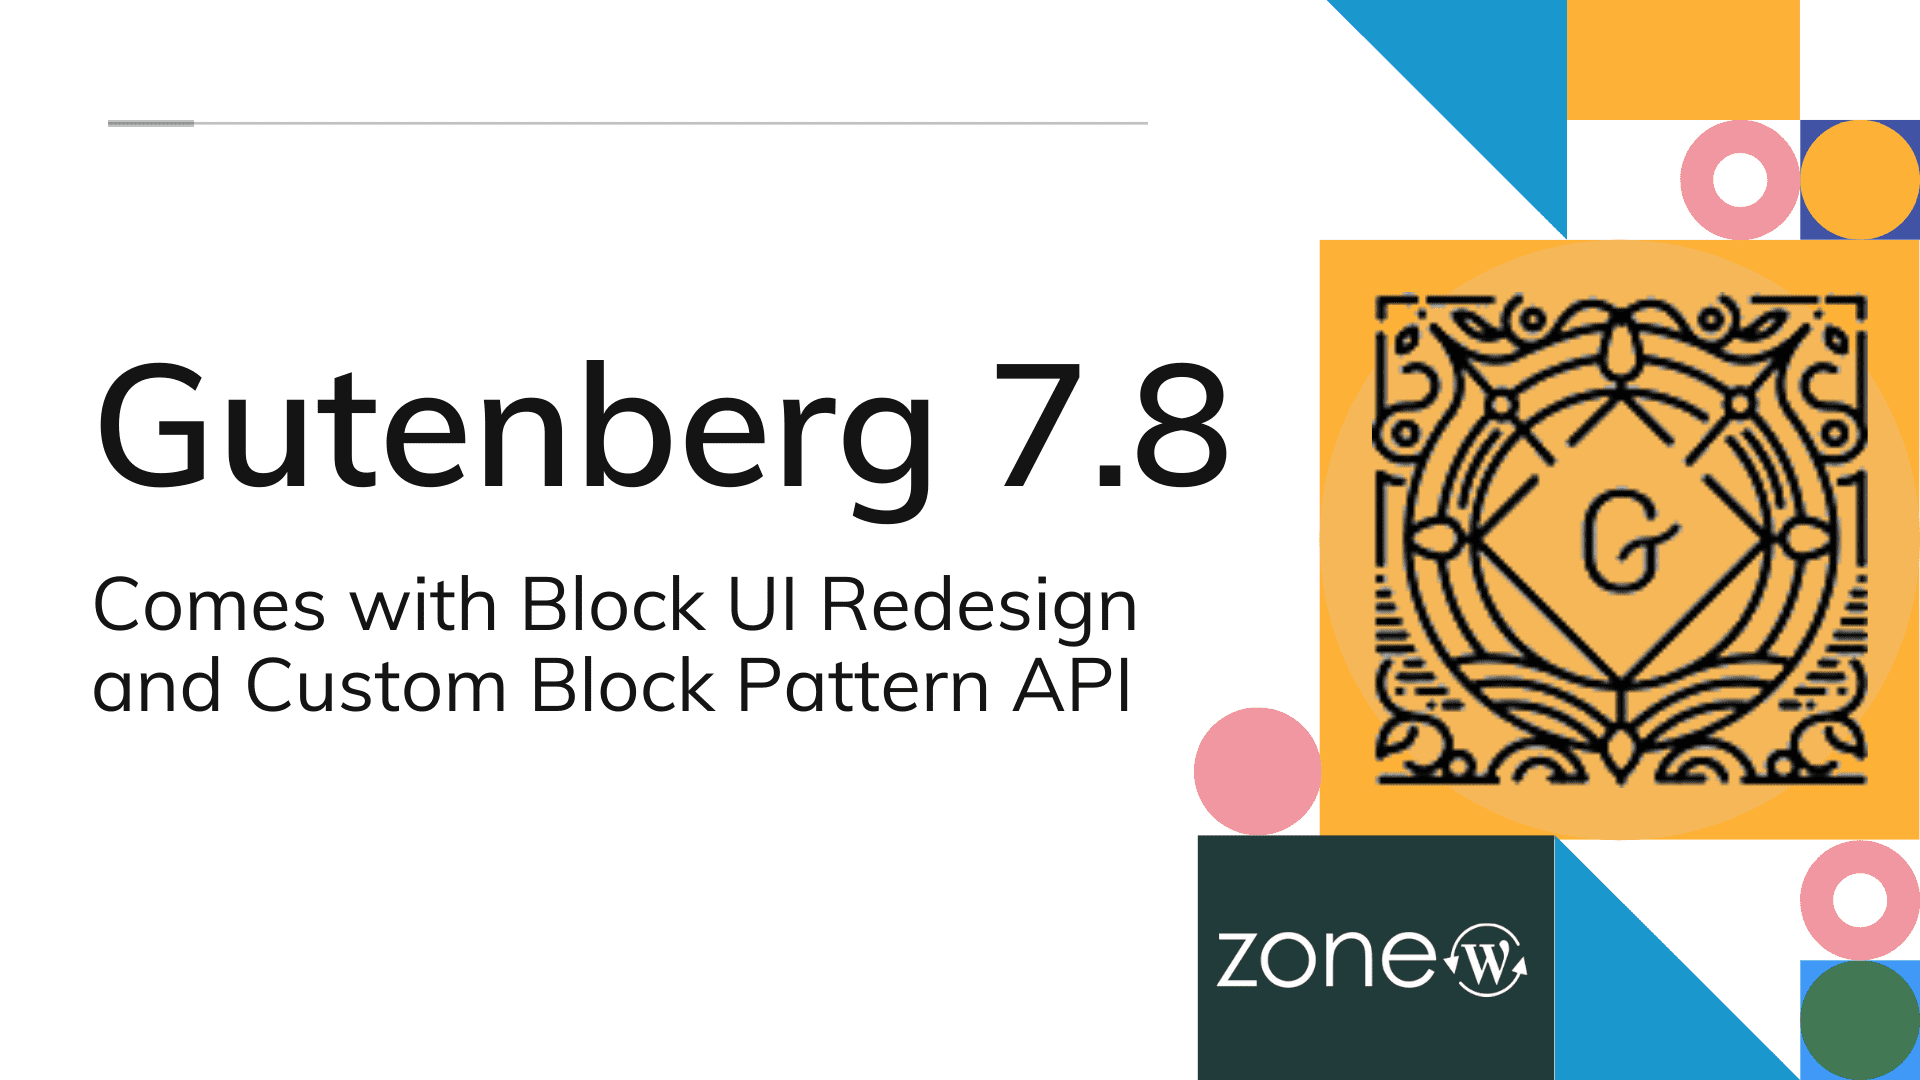 Gutenberg 7.8 Comes with Block UI Redesign and Custom Block Pattern API